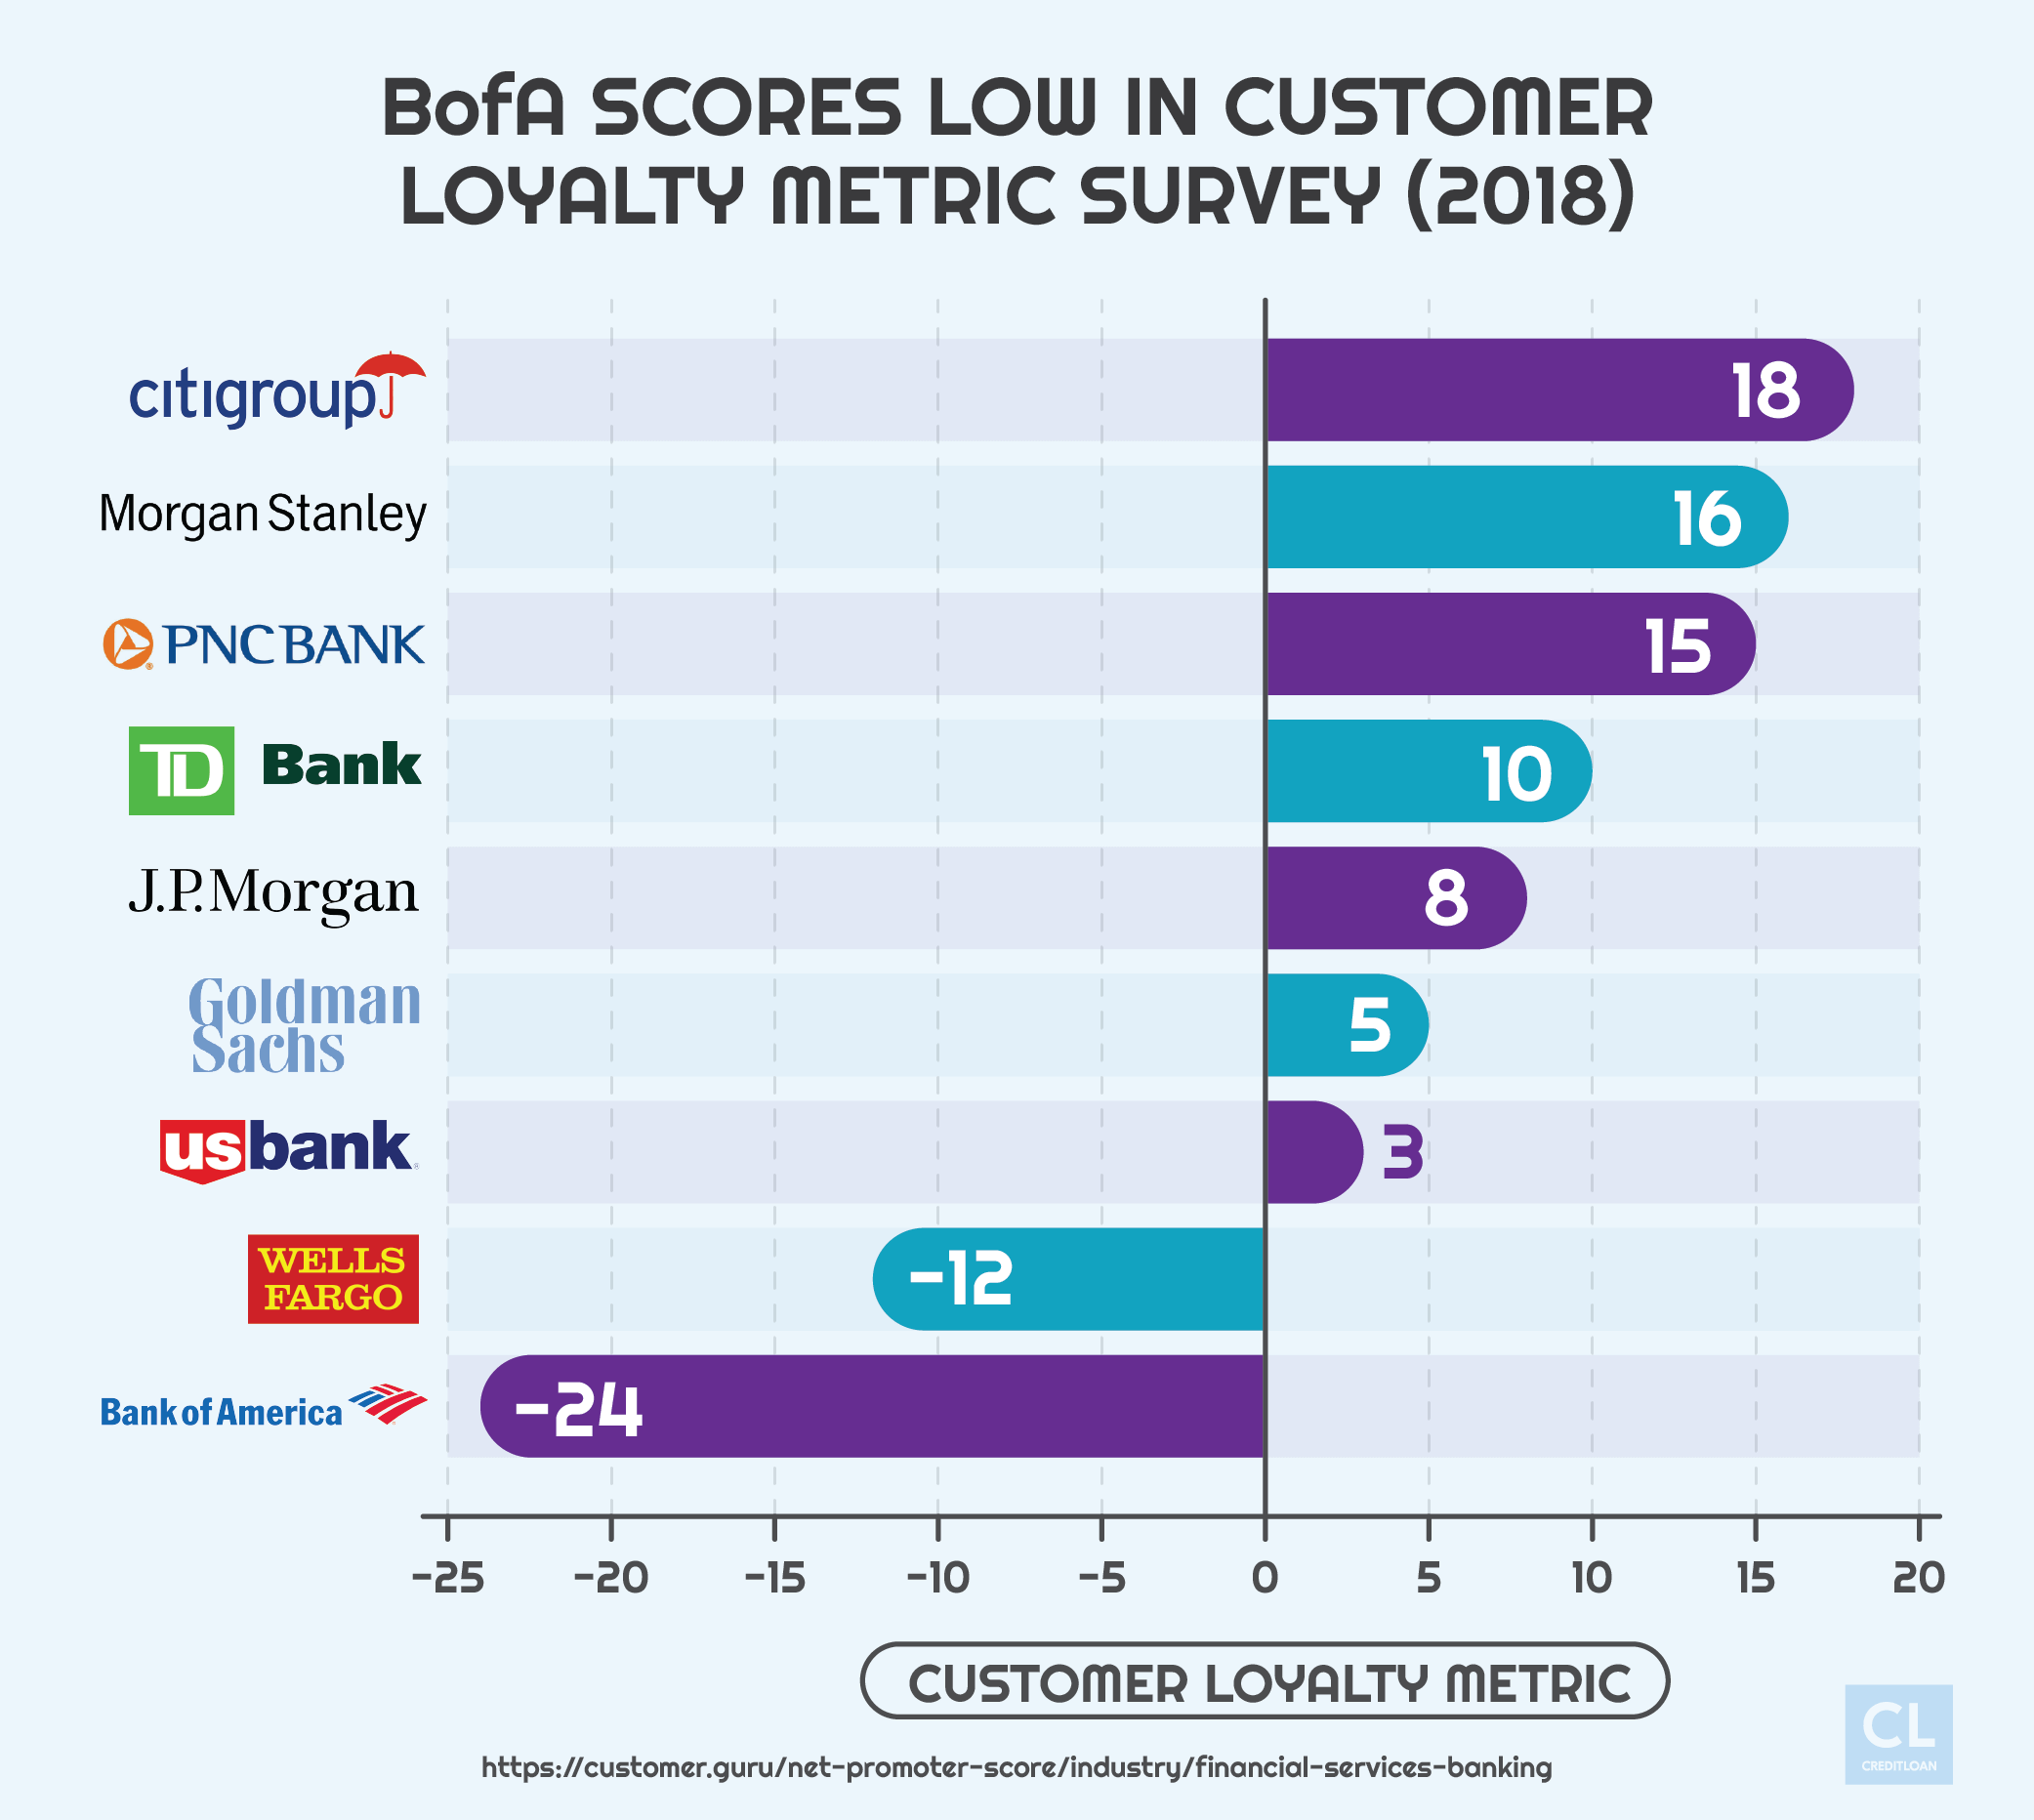 Customer Loyalty Metric Survey 2018